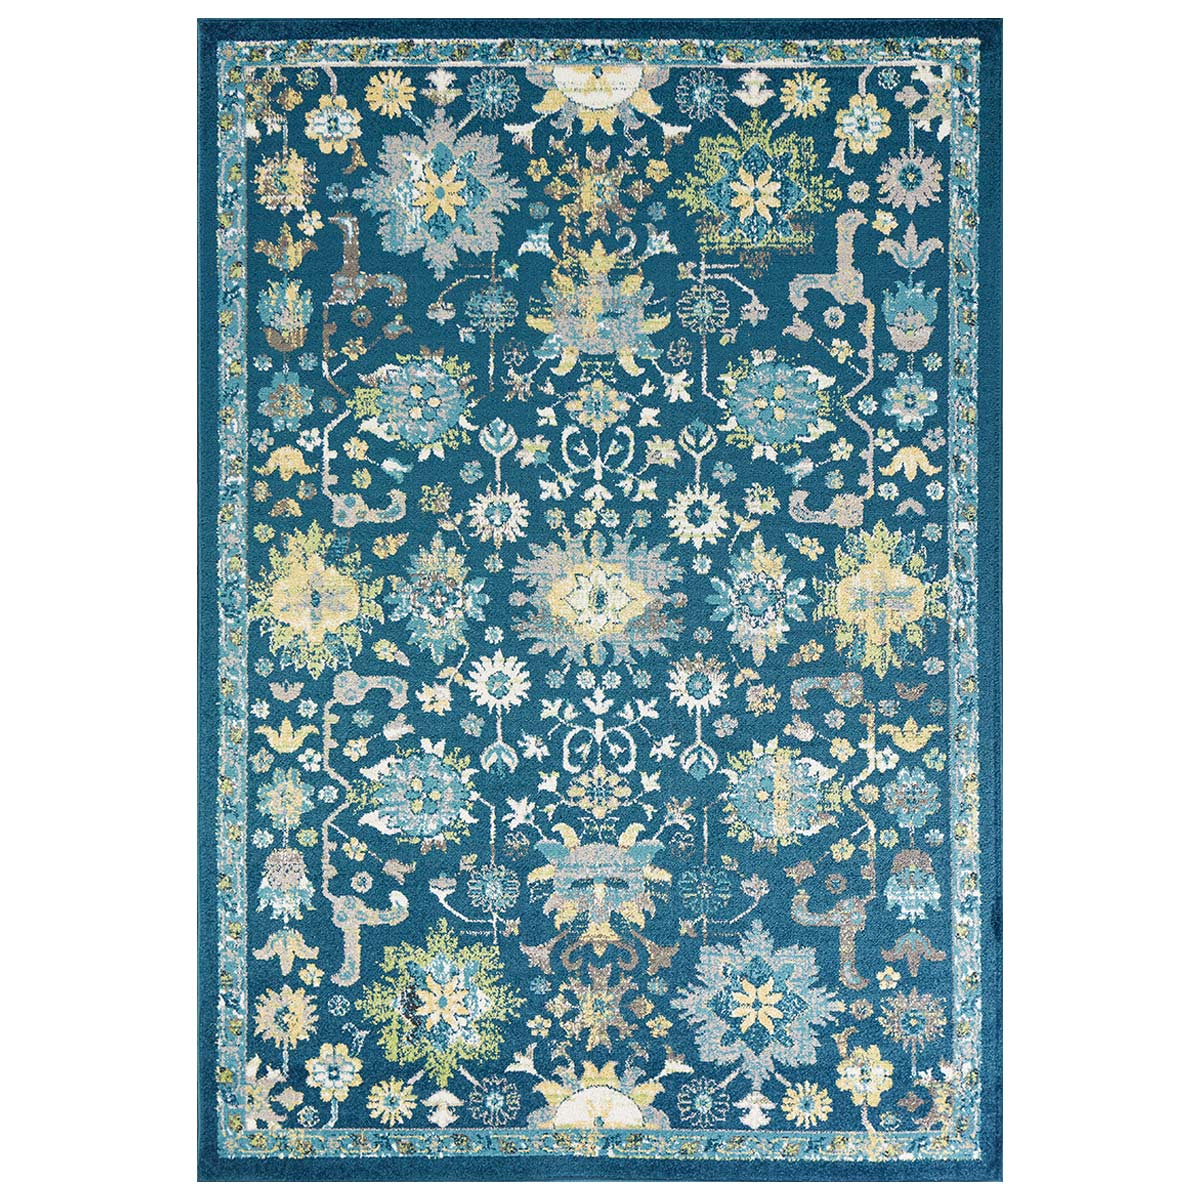 Stagecoach Luxury Rug - 5 x 8